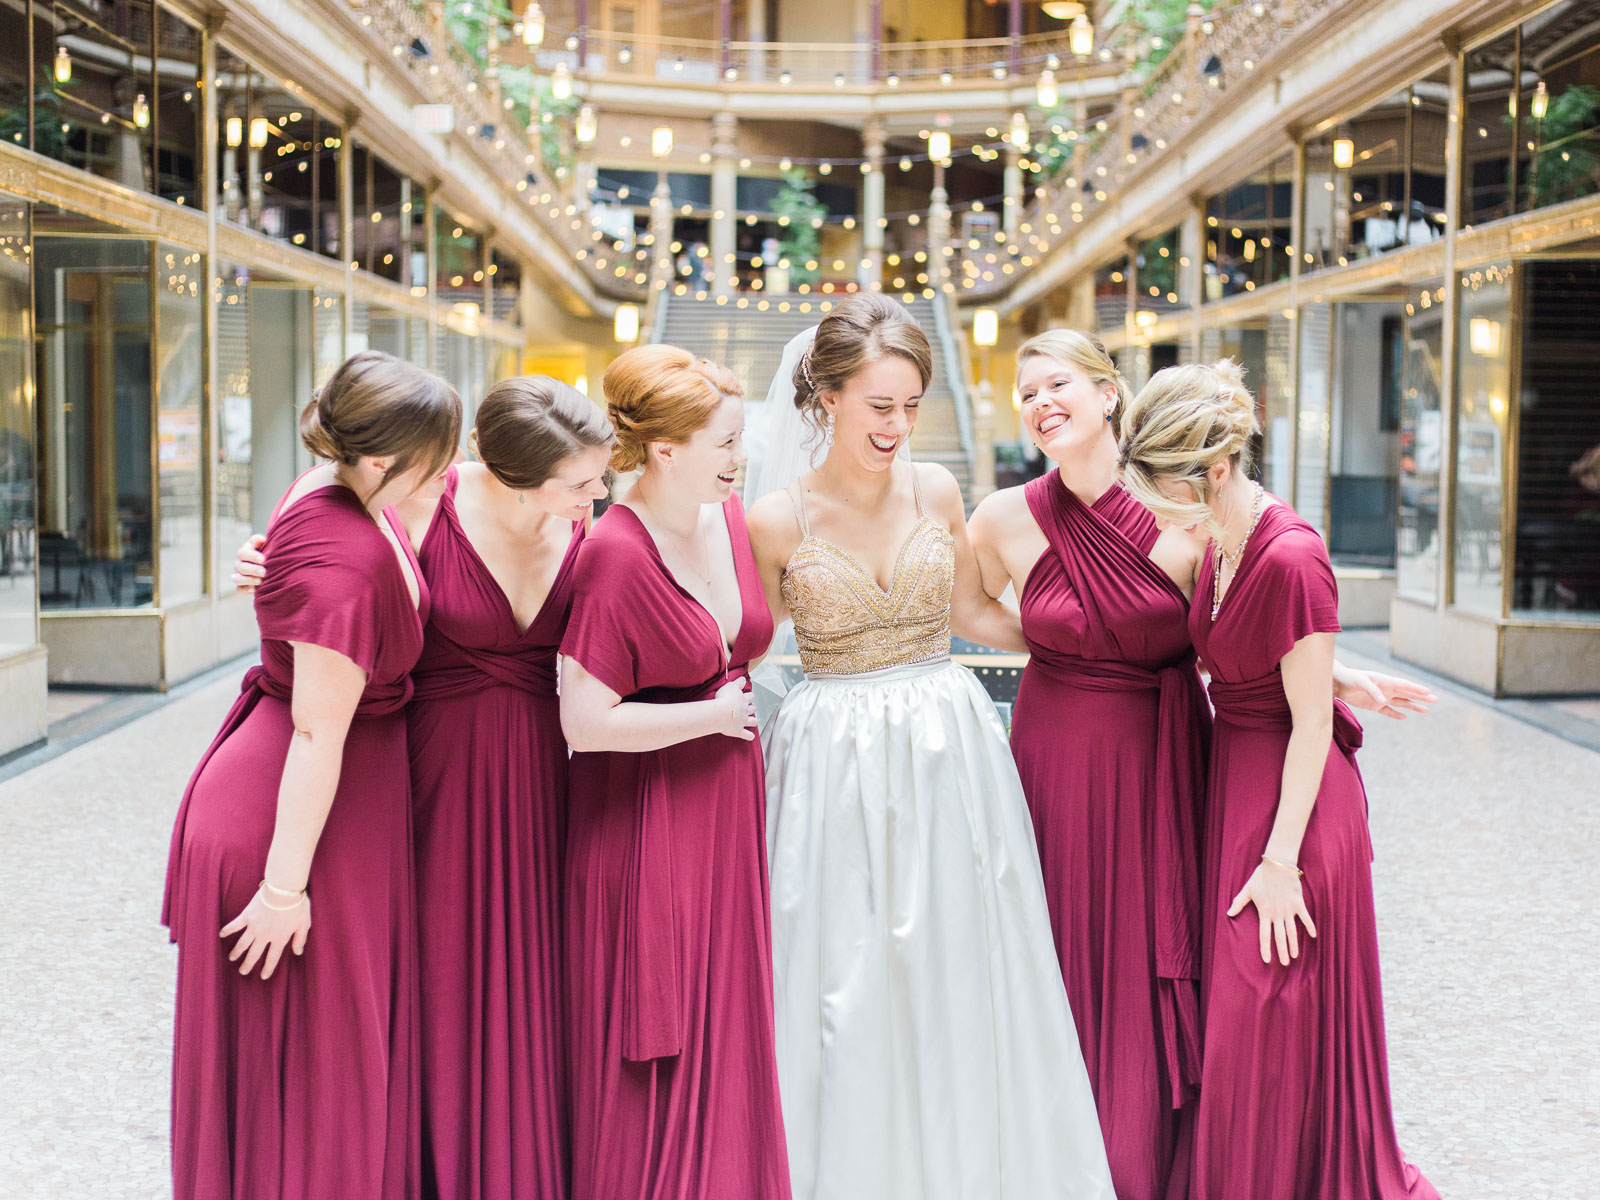 Hyatt at the Arcade, Arcade wedding, Cleveland Ohio, Cleveland Photographer, Cleveland Wedding, Matt Erickson Photography